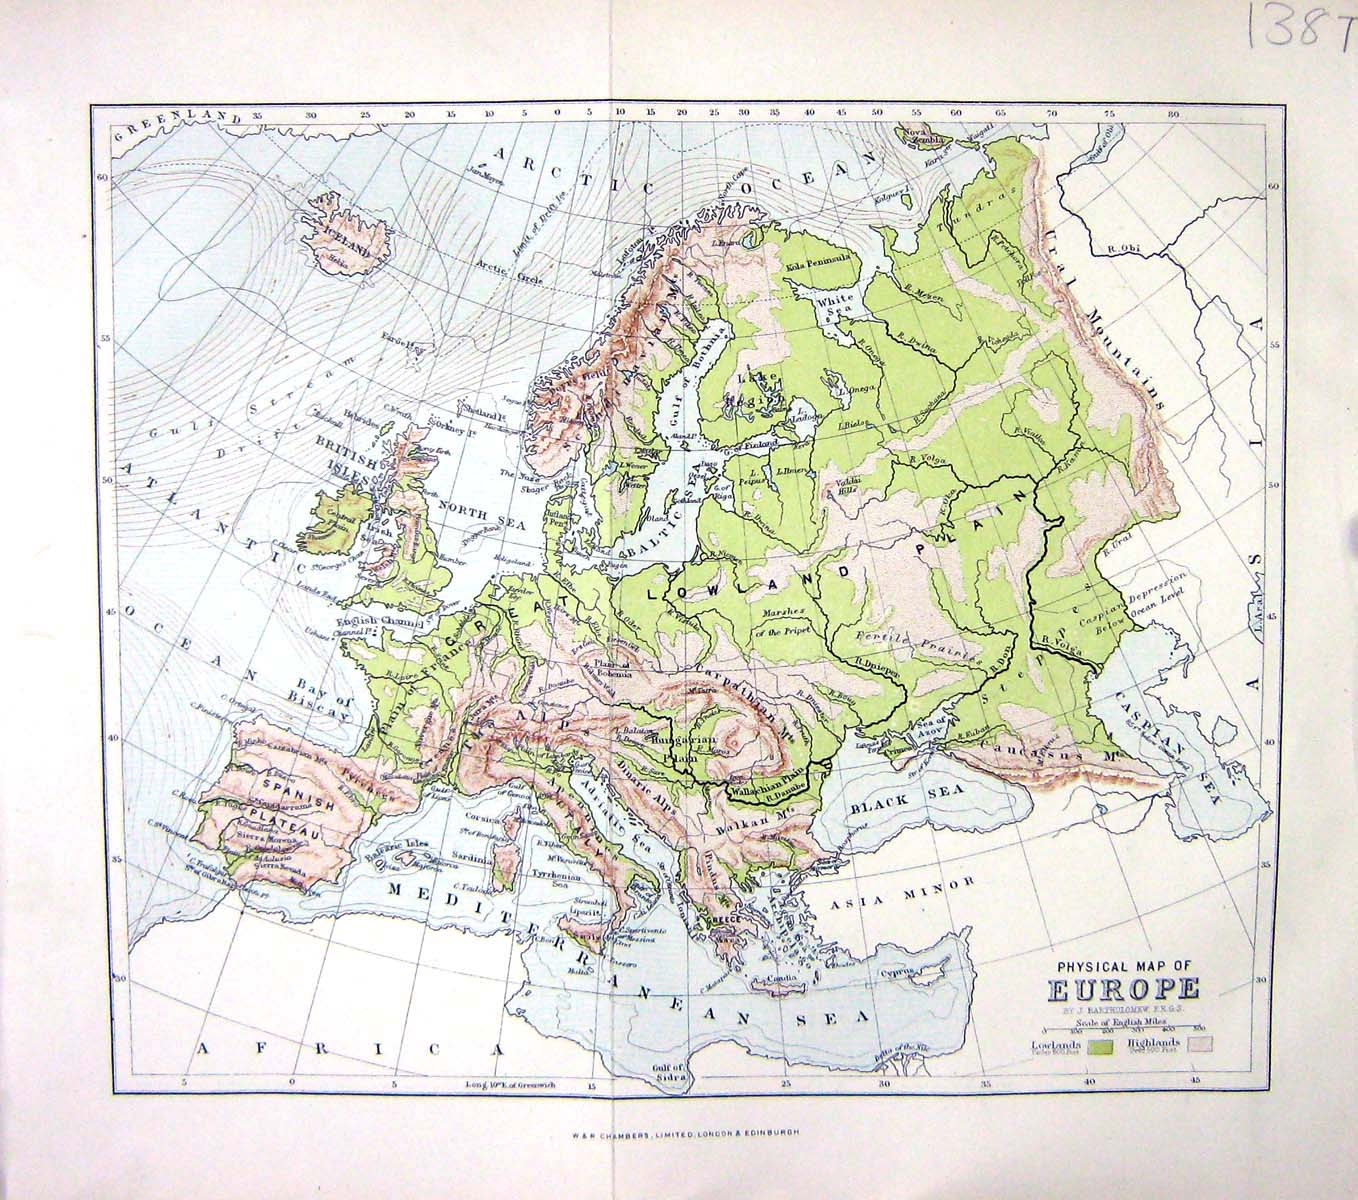 Old print antique and victorian art prints paintings world maps print chambers physical map c1906 europe britain france spain italy gre 138th114 old original gumiabroncs Image collections